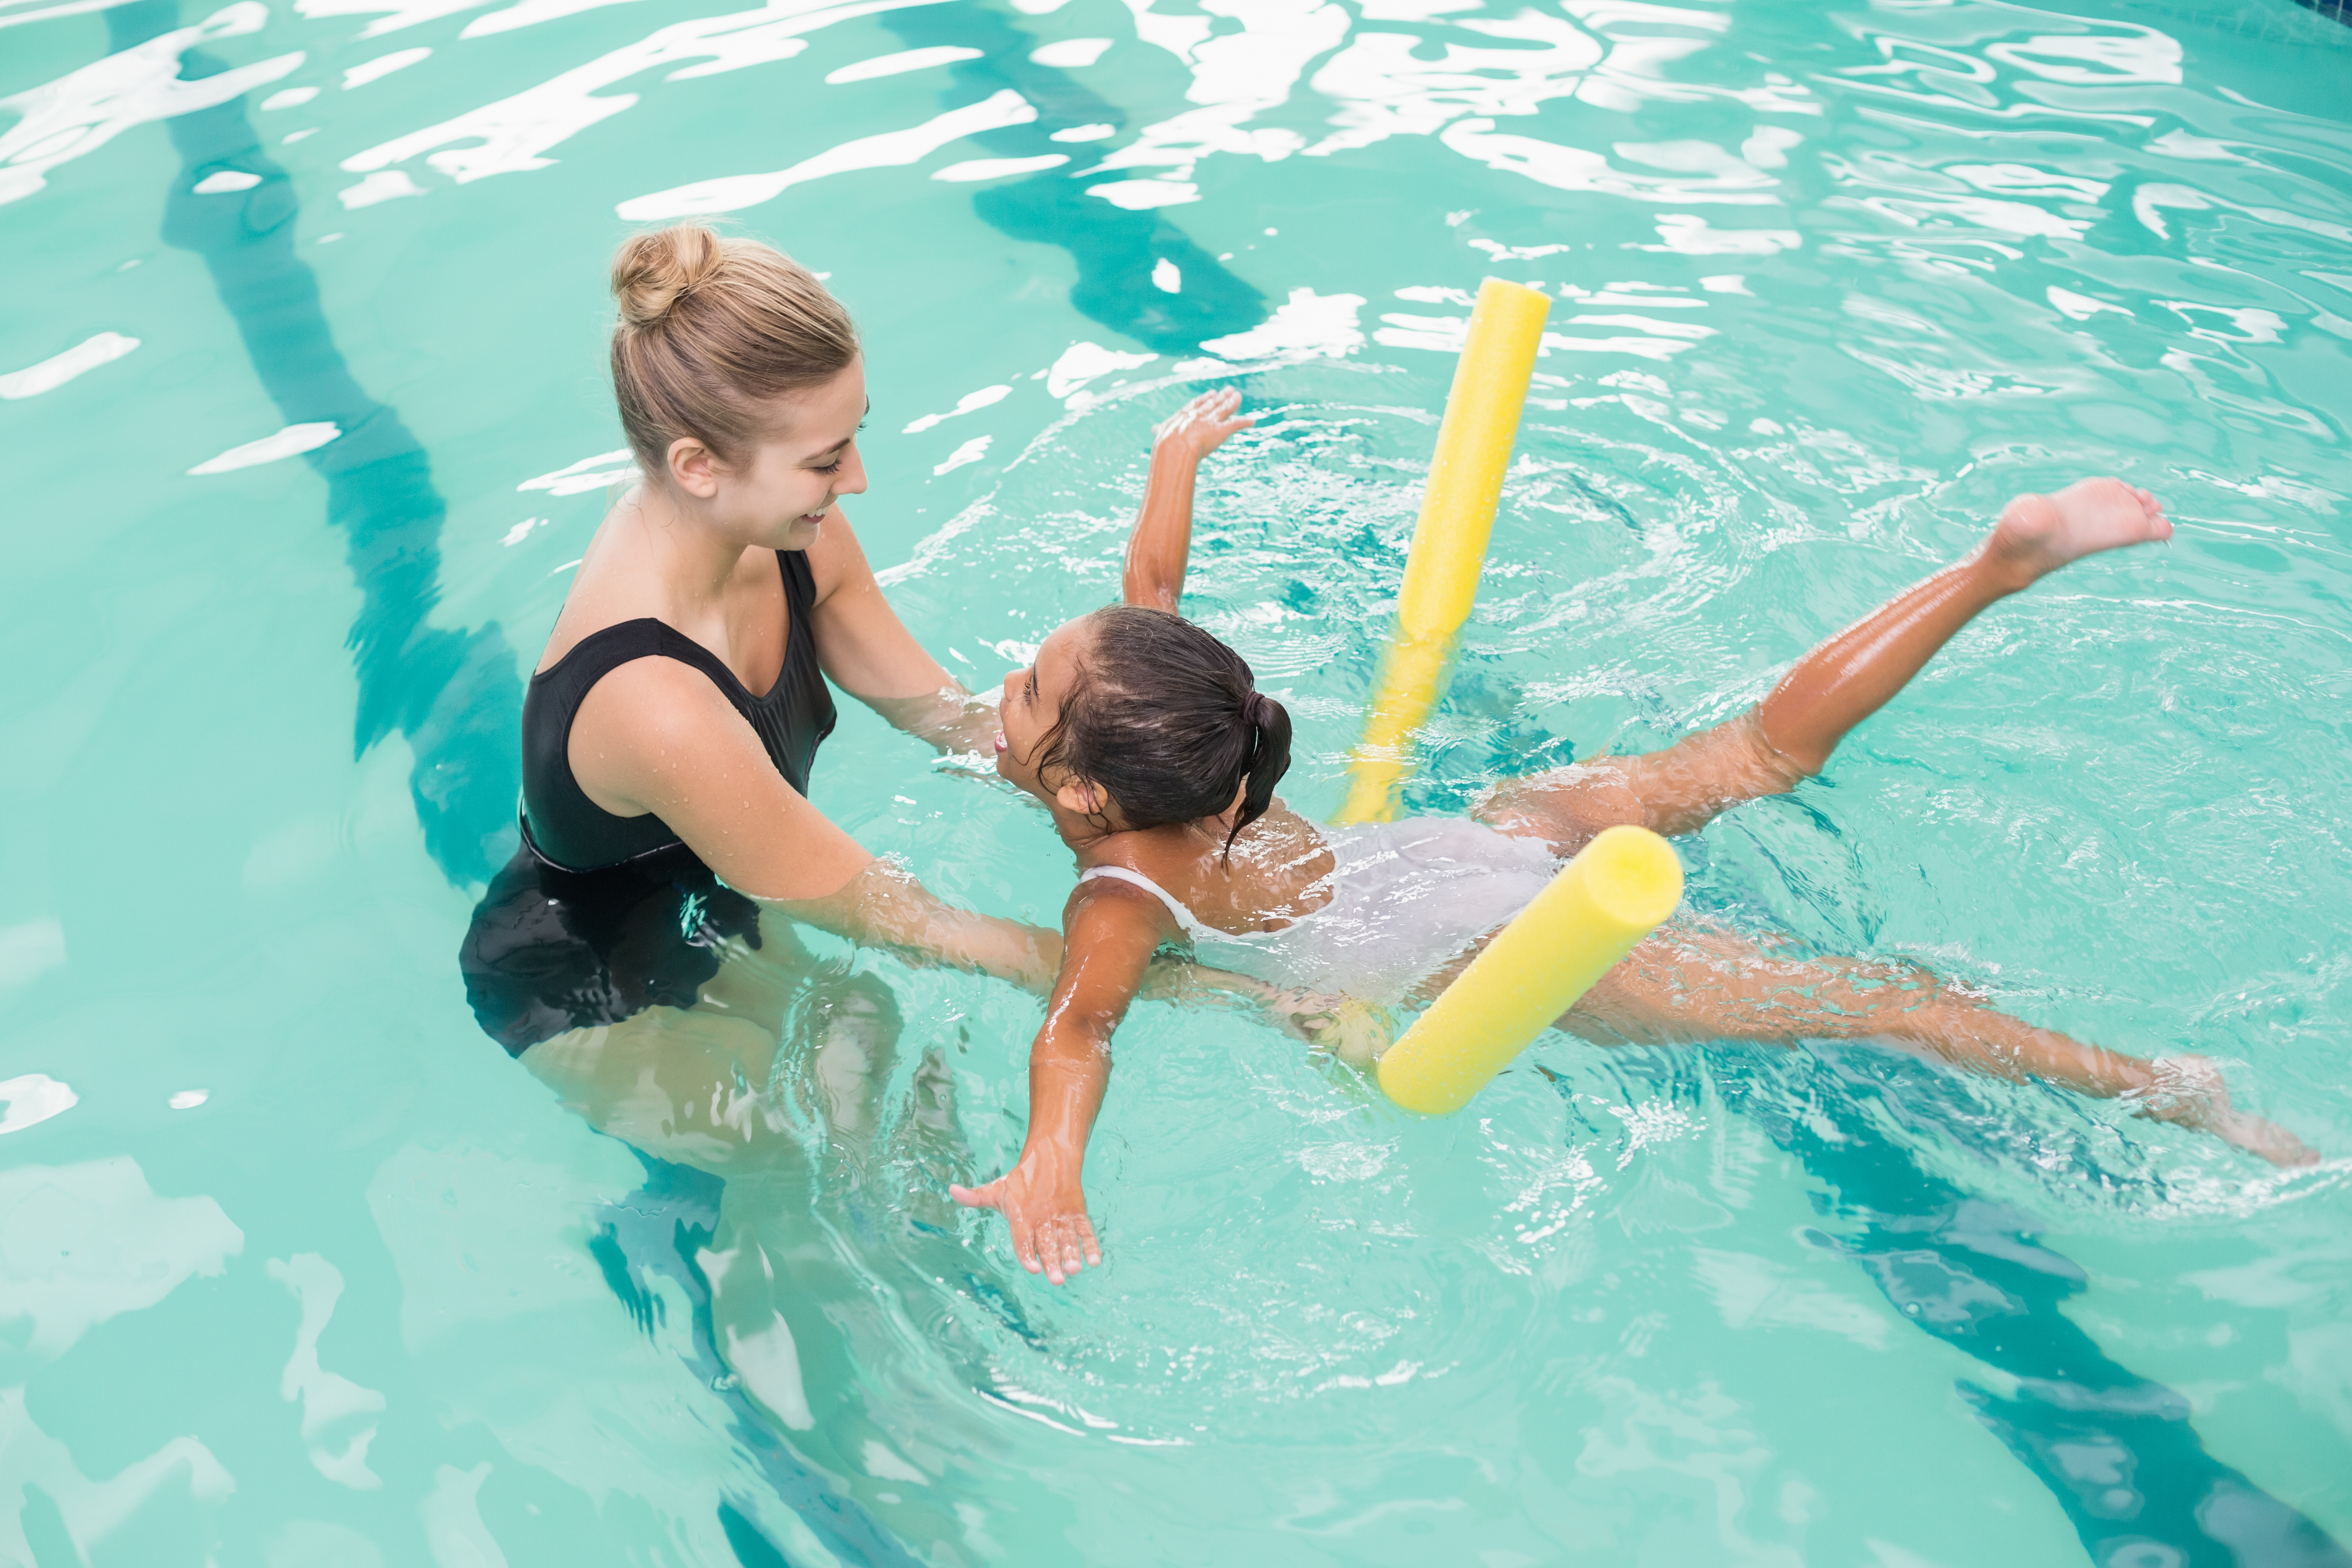 Keeping lessons fun will increase registration rates at your swim school